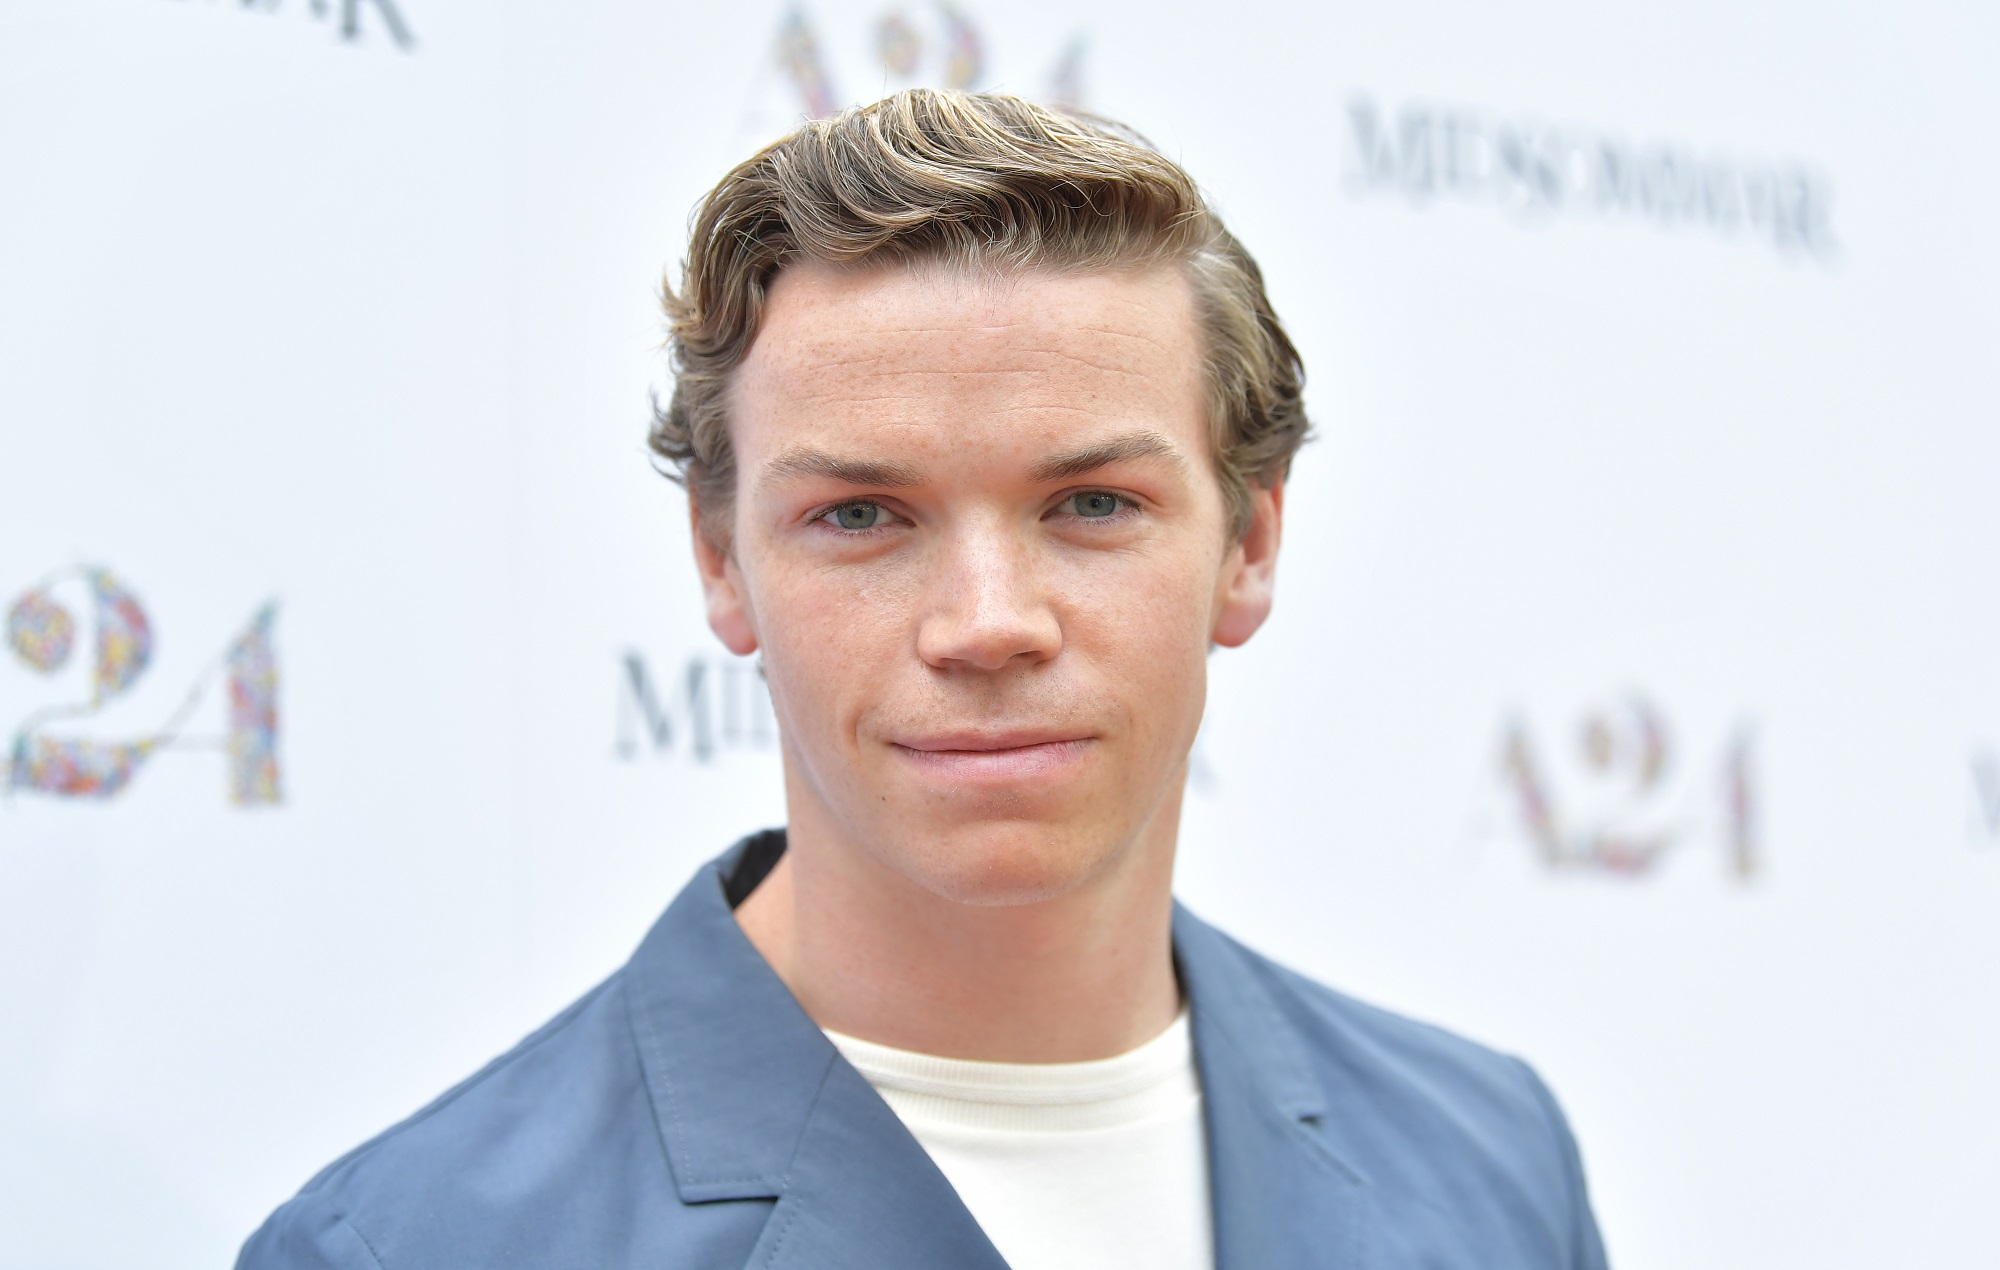 'Black Mirror' actor Will Poulter to star in Amazon's 'Lord of the Rings' TV series